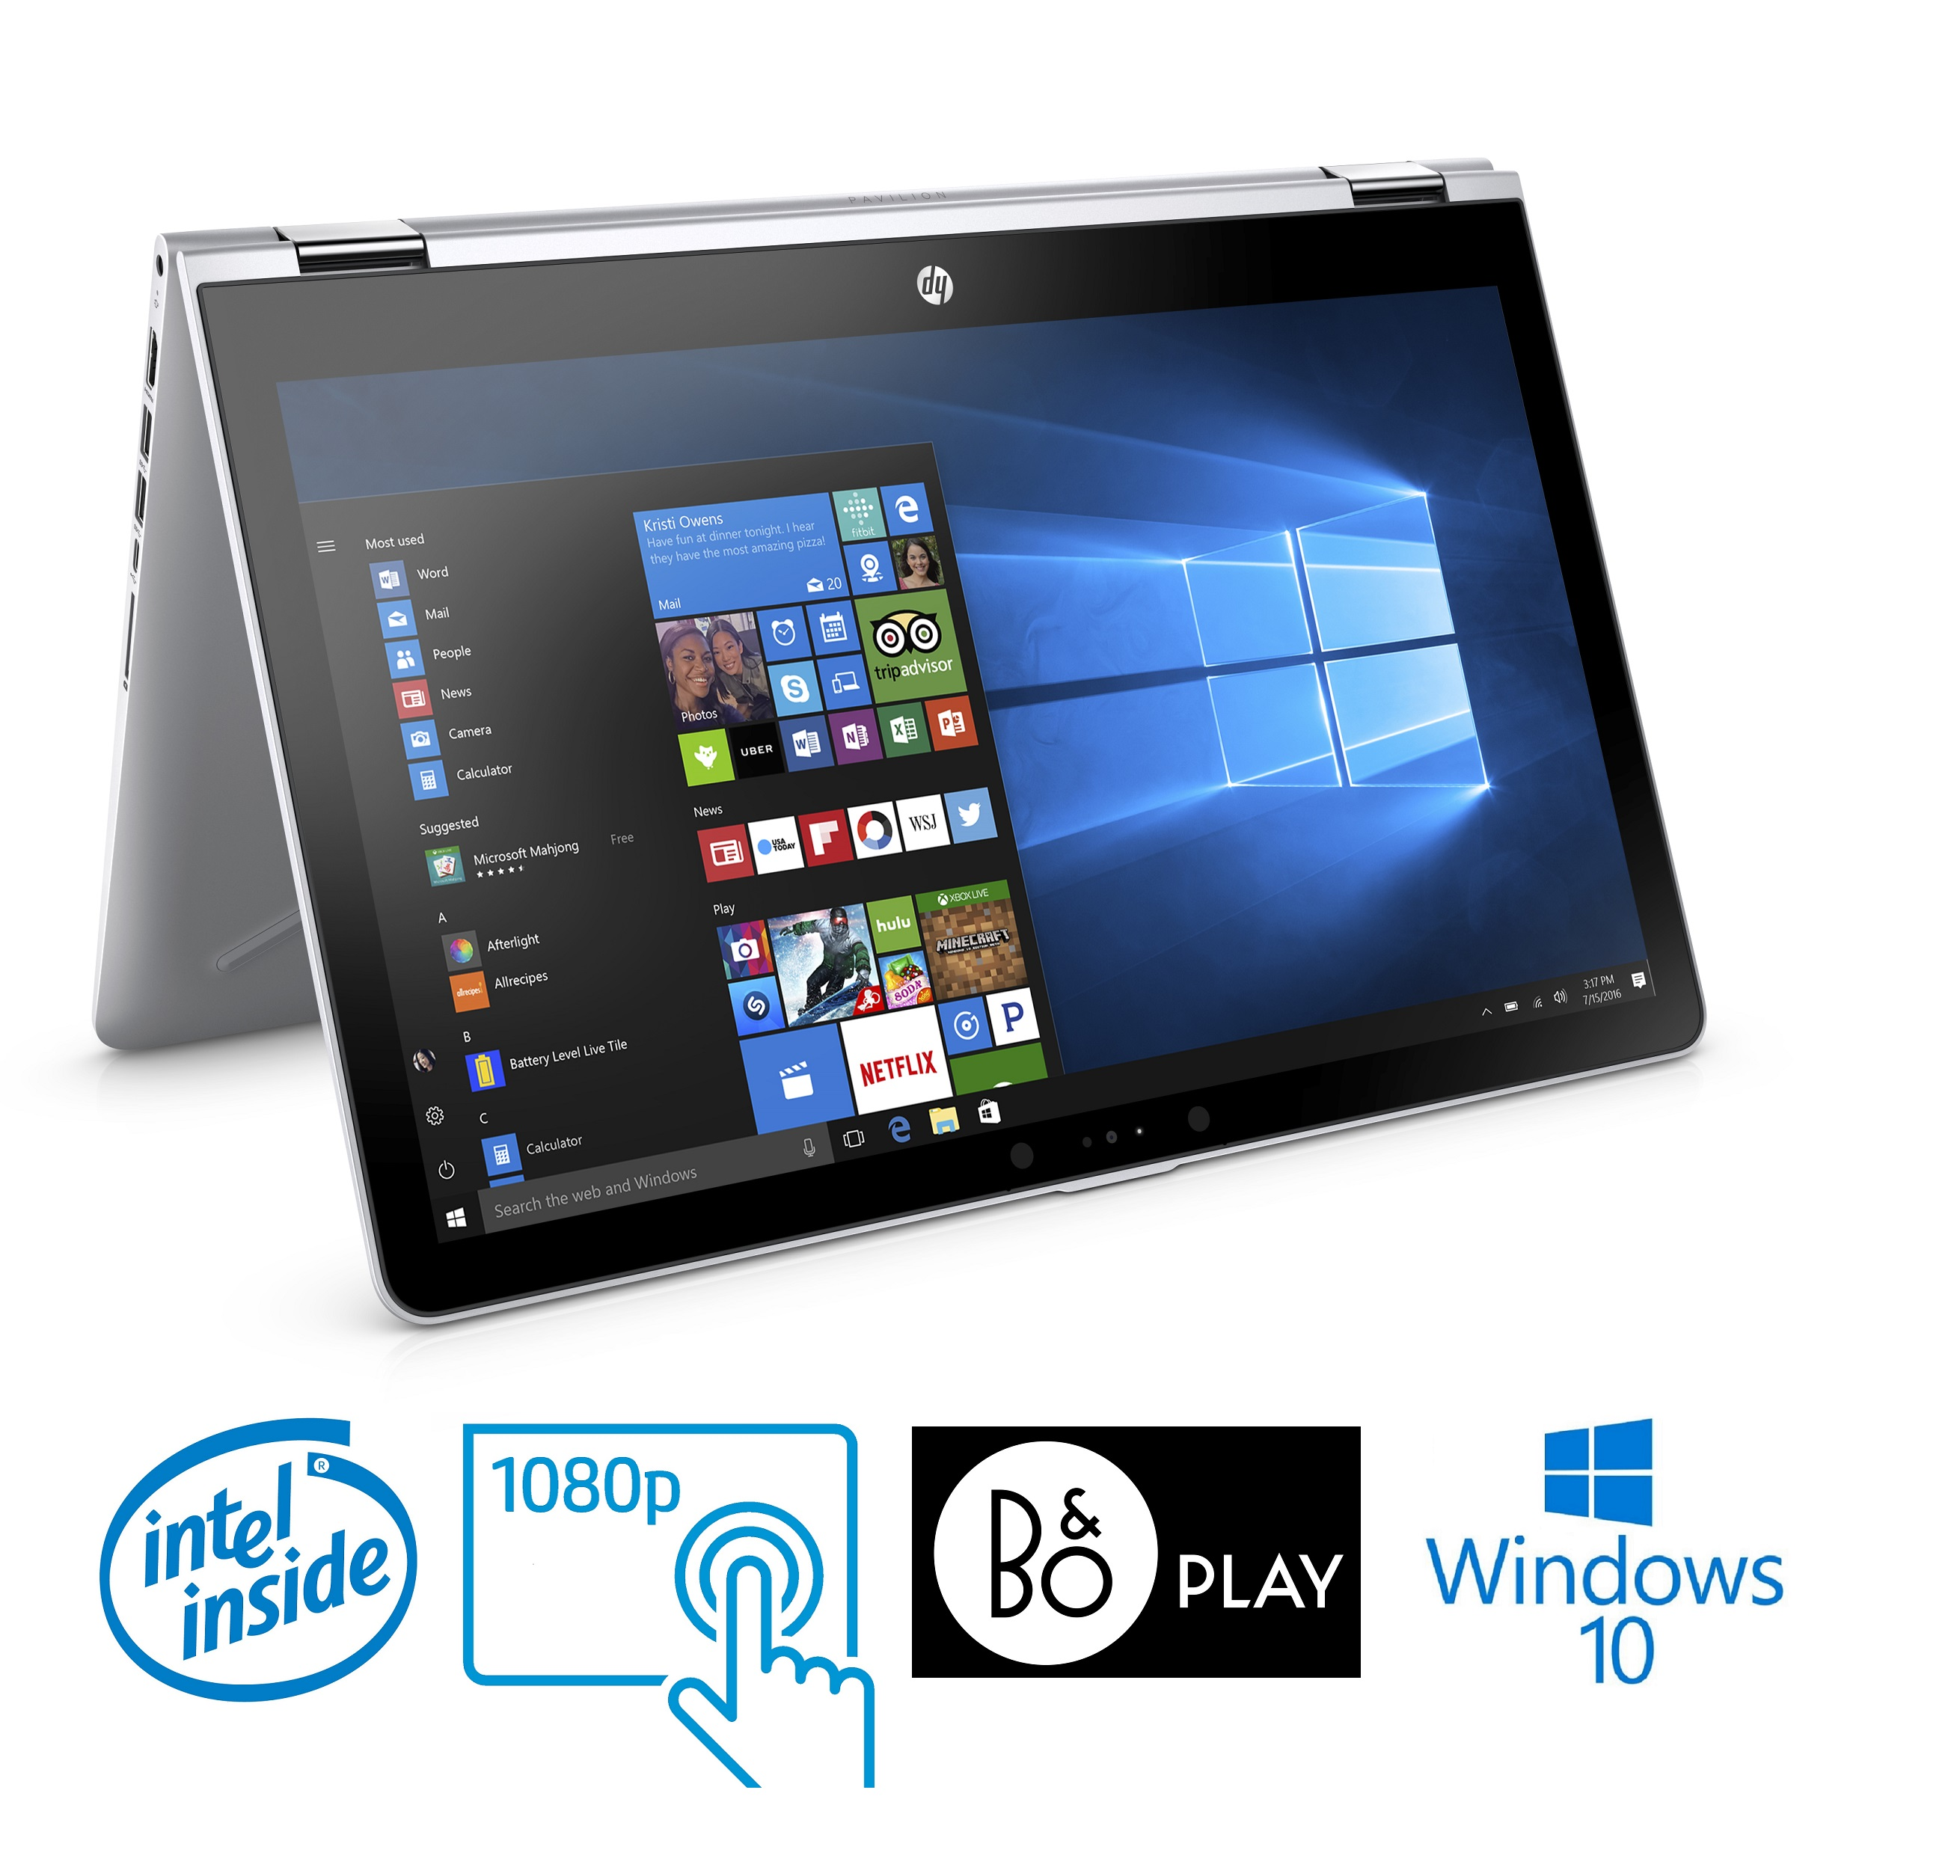 "HP Pavilion 15-br x360 Pentium 6GB 15.6"" Full HD Touch Screen Convertible Laptop (Refurbished)"